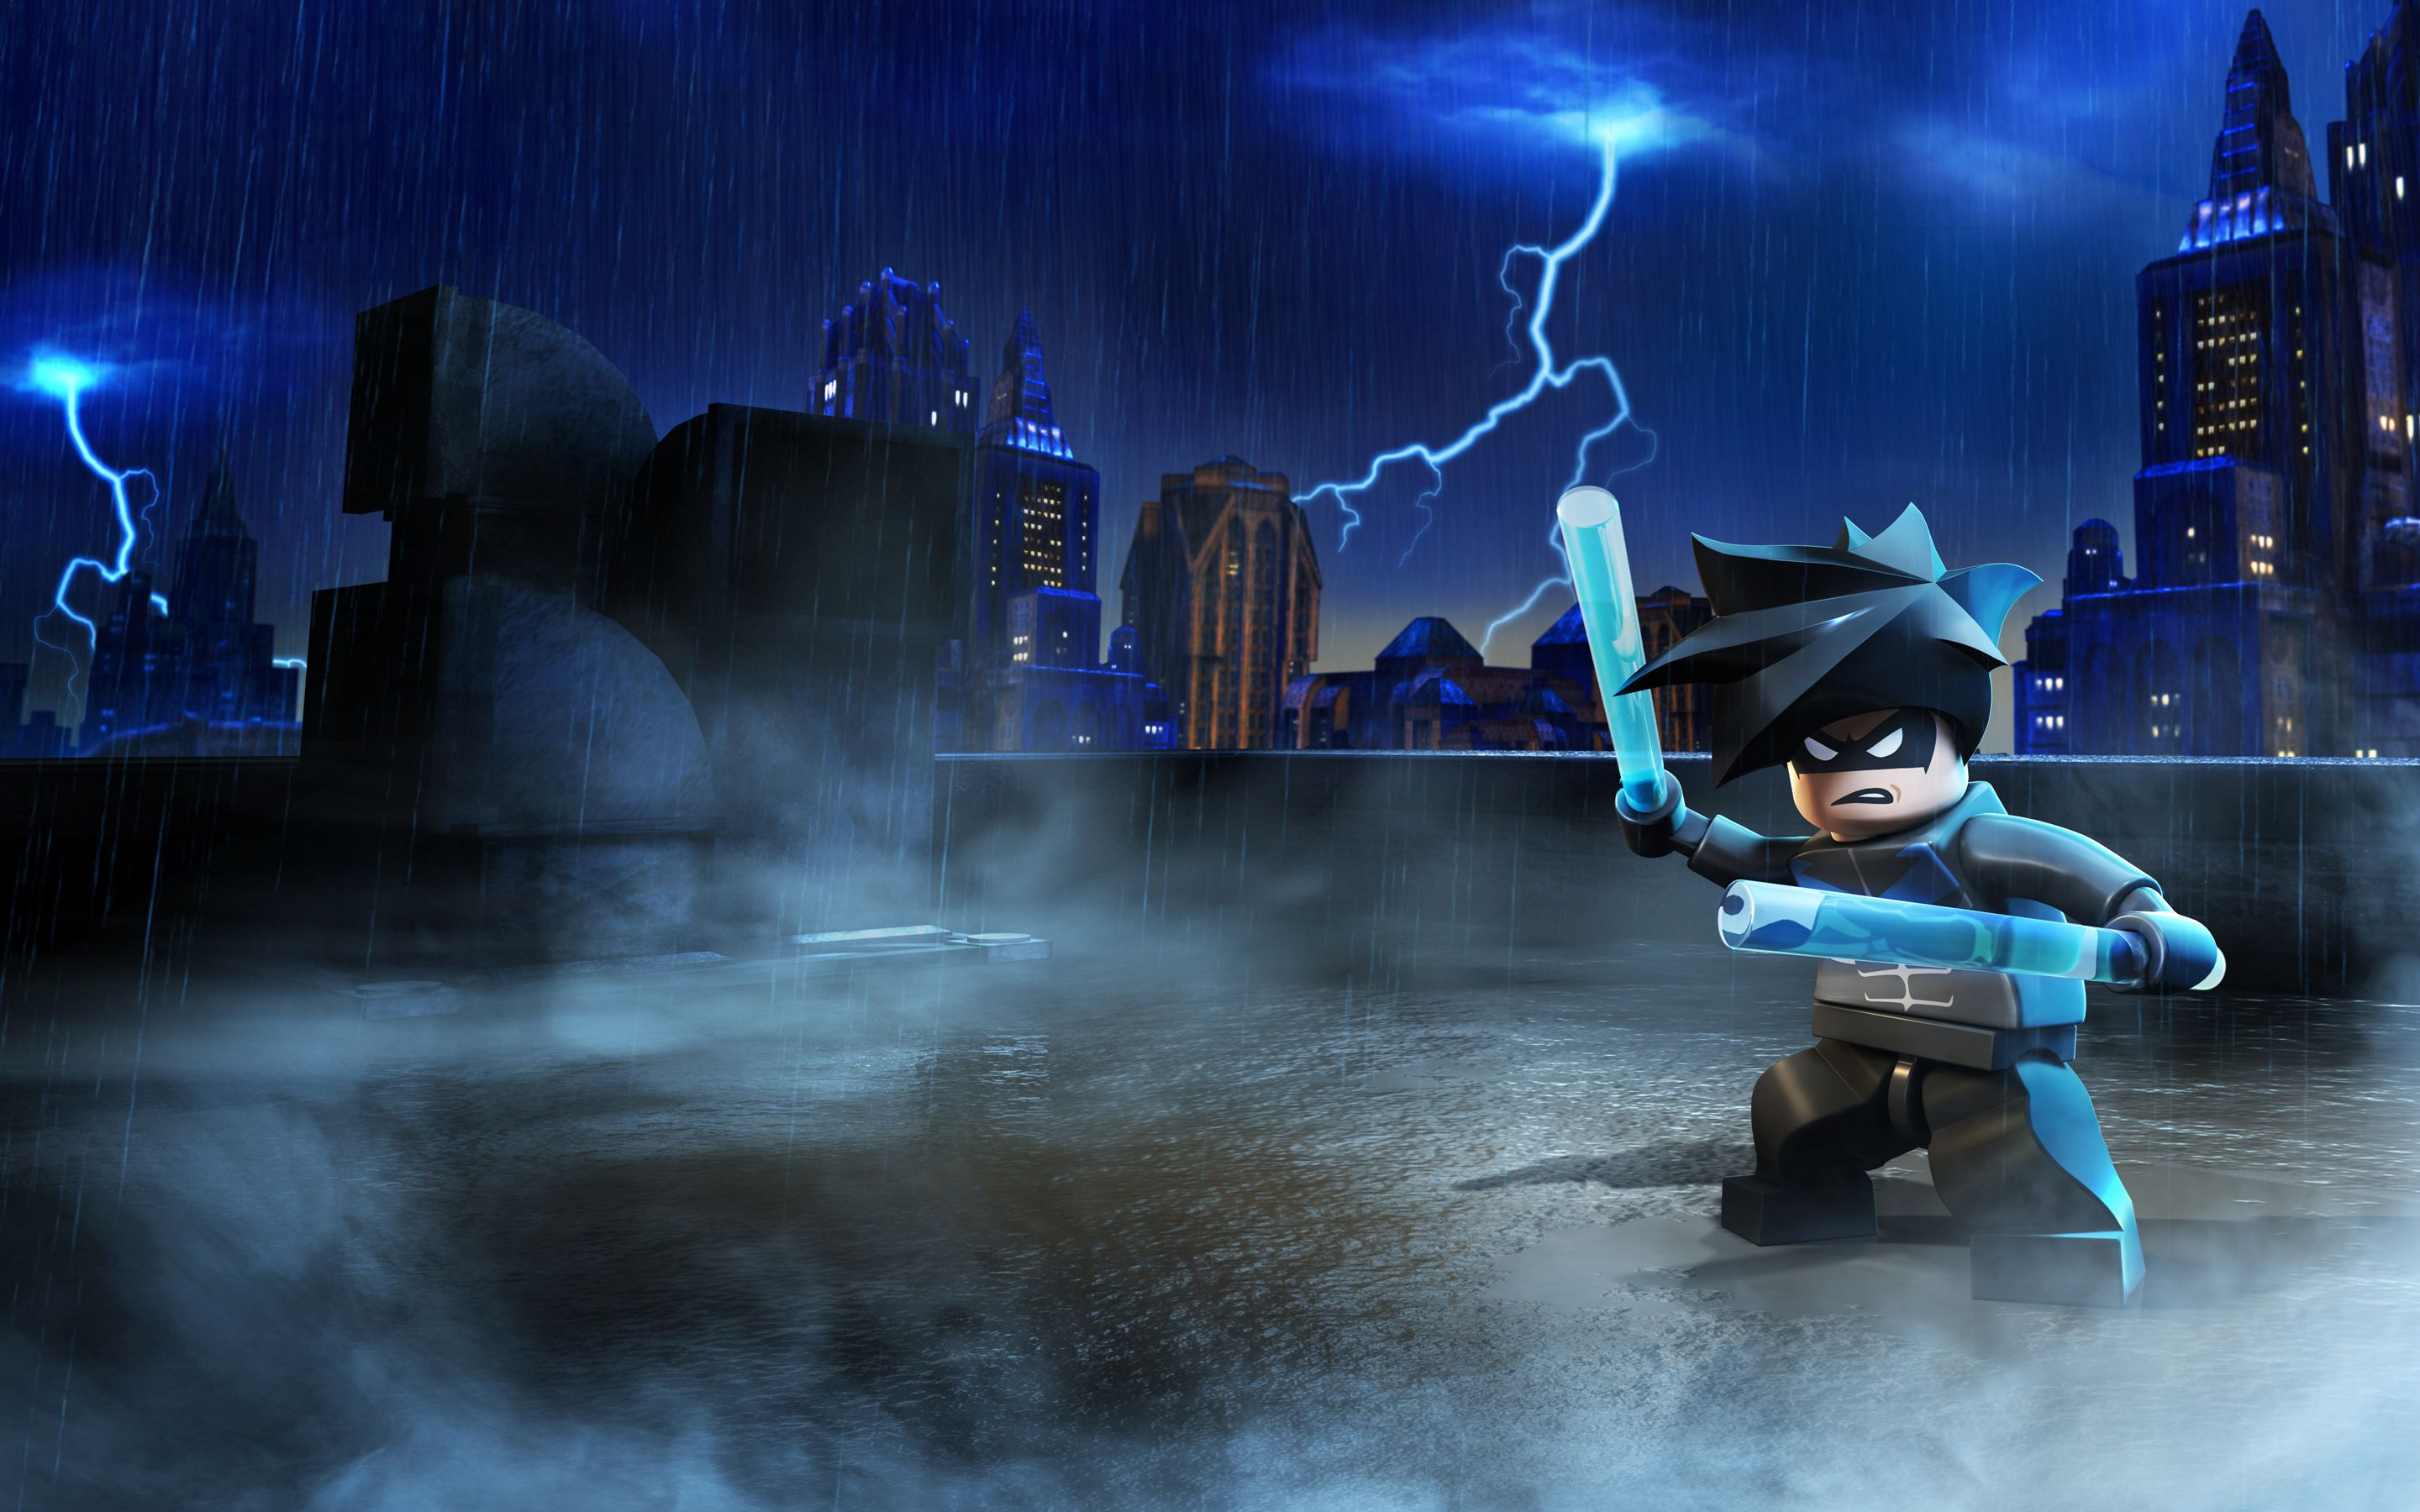 Lego Batman - This HD N/A wallpaper is taken from N/A Lego Marvel Super Heroes. Played by Adrian Pasdar, Andrew Kishino, Clark Gregg, Danielle Nicolet.